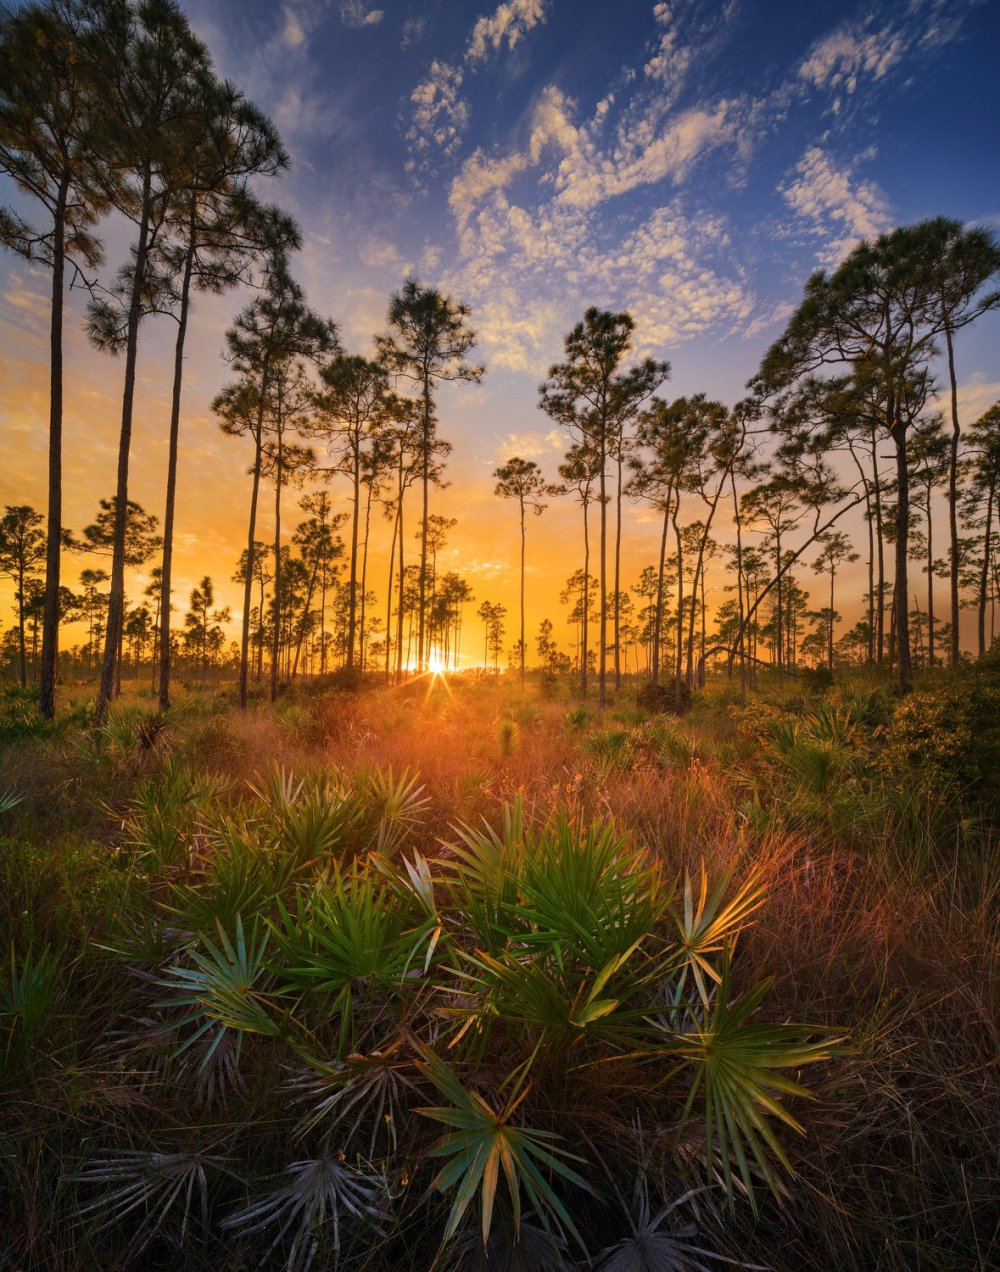 This epic sunset picture of Everglades National Park is 1 of 16 new stamps celebrating the National Park Service. Photo by Paul Marcellini. Tweeted by the US Department of the Interior, 6/6/16.